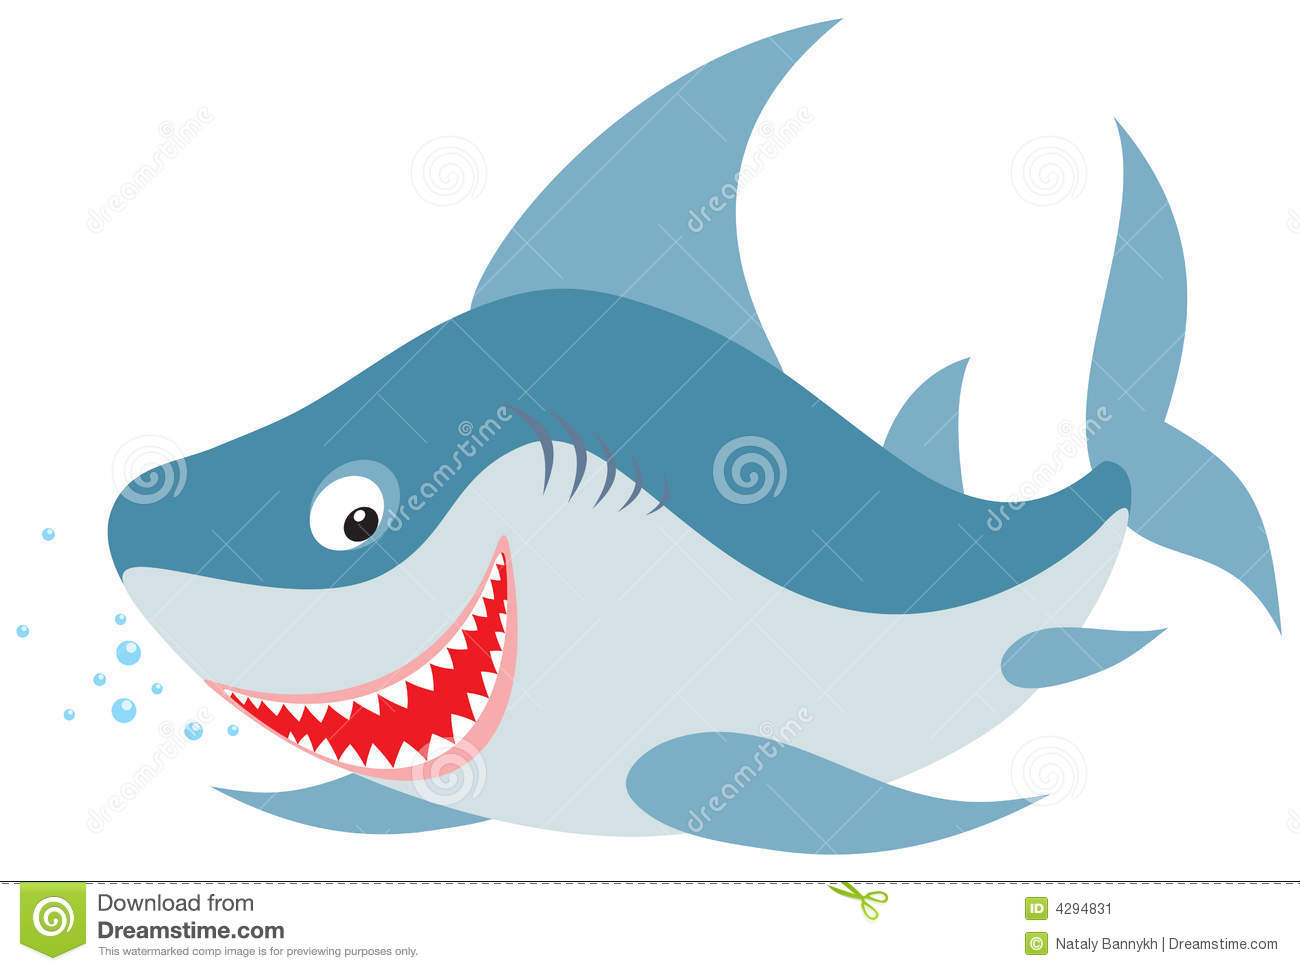 Shark Teeth Clipart | Free download best Shark Teeth Clipart on ...